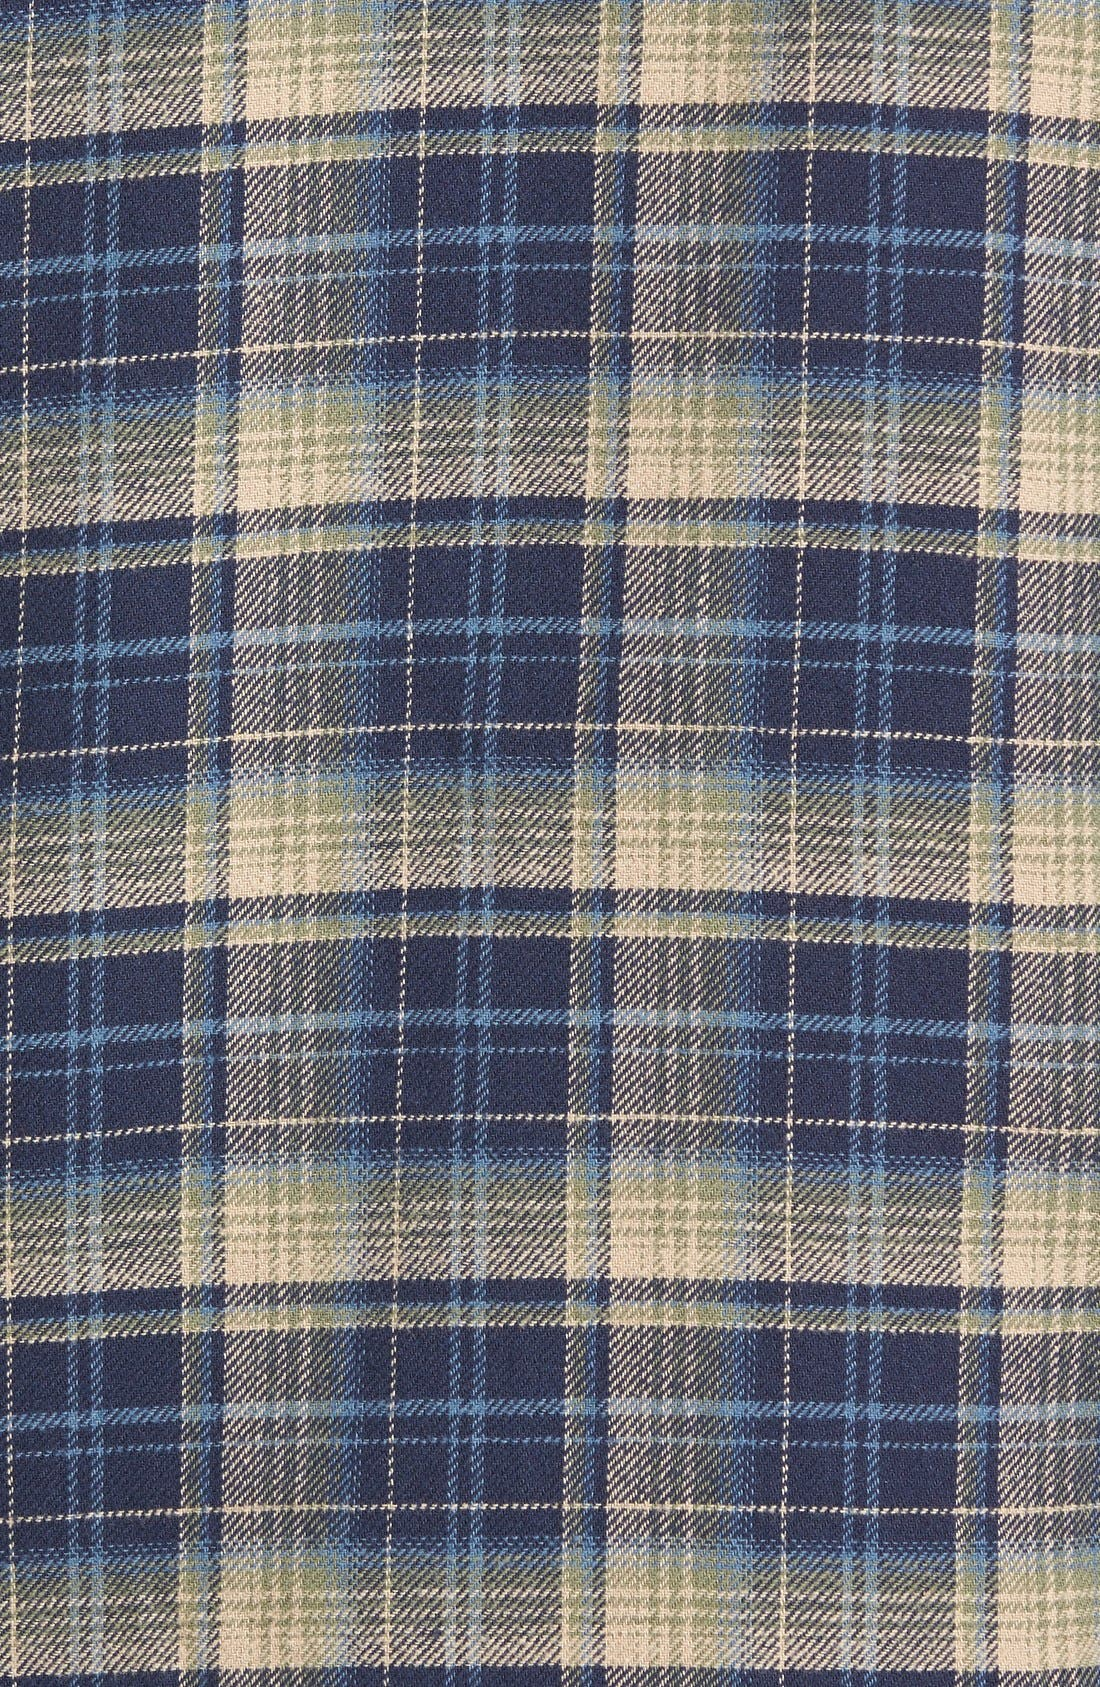 'Alford' Trim Fit Long Sleeve Plaid Hooded Shirt,                             Alternate thumbnail 4, color,